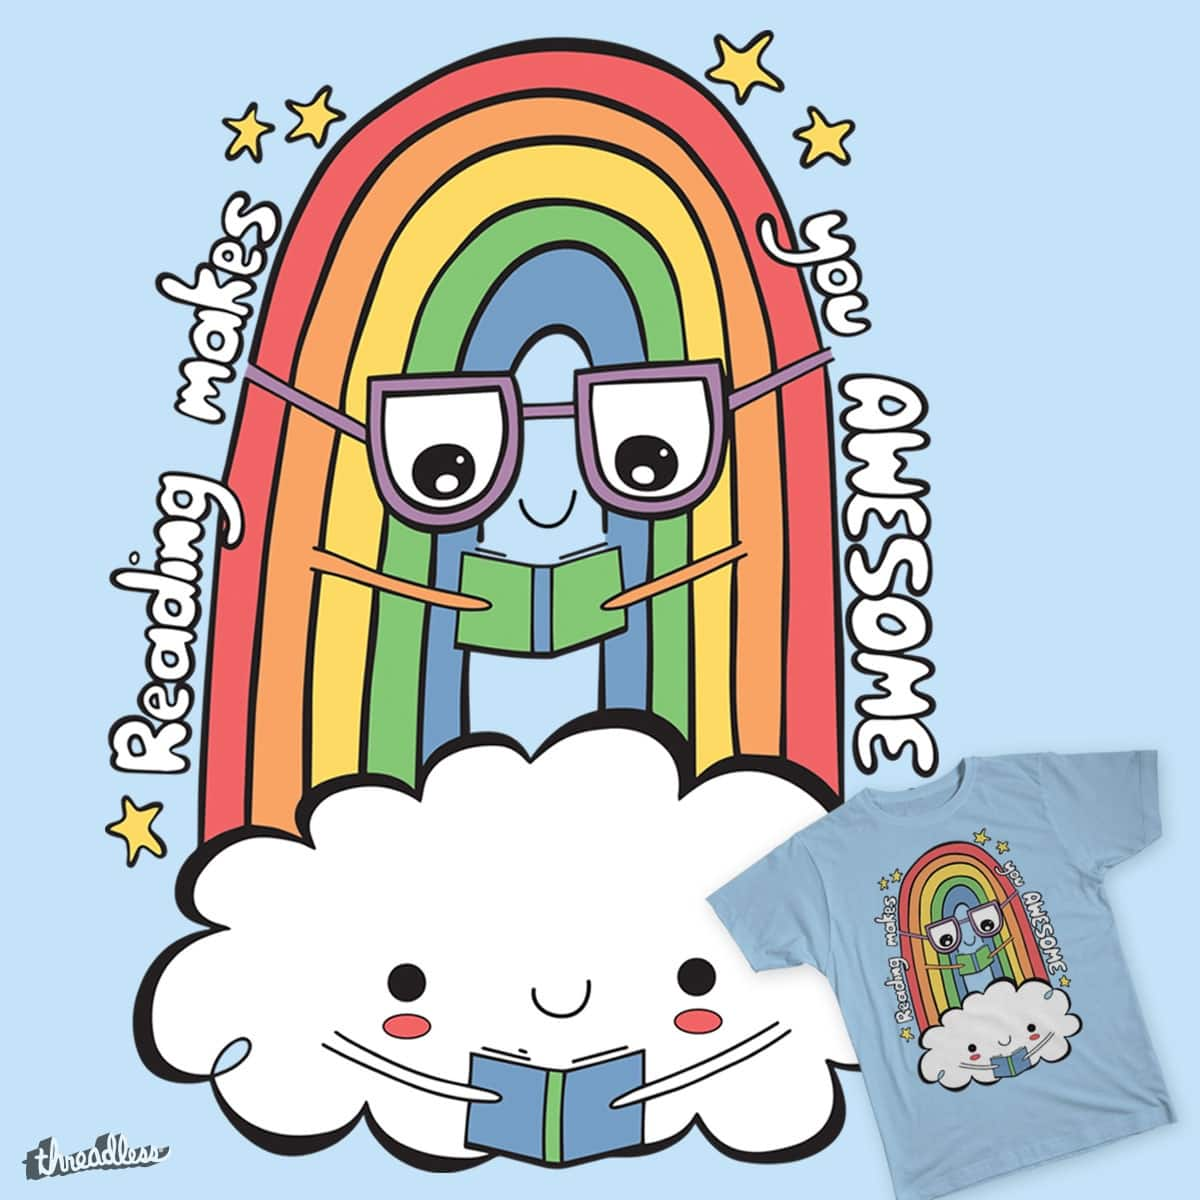 Reading Makes You Awesome by treemanjake on Threadless